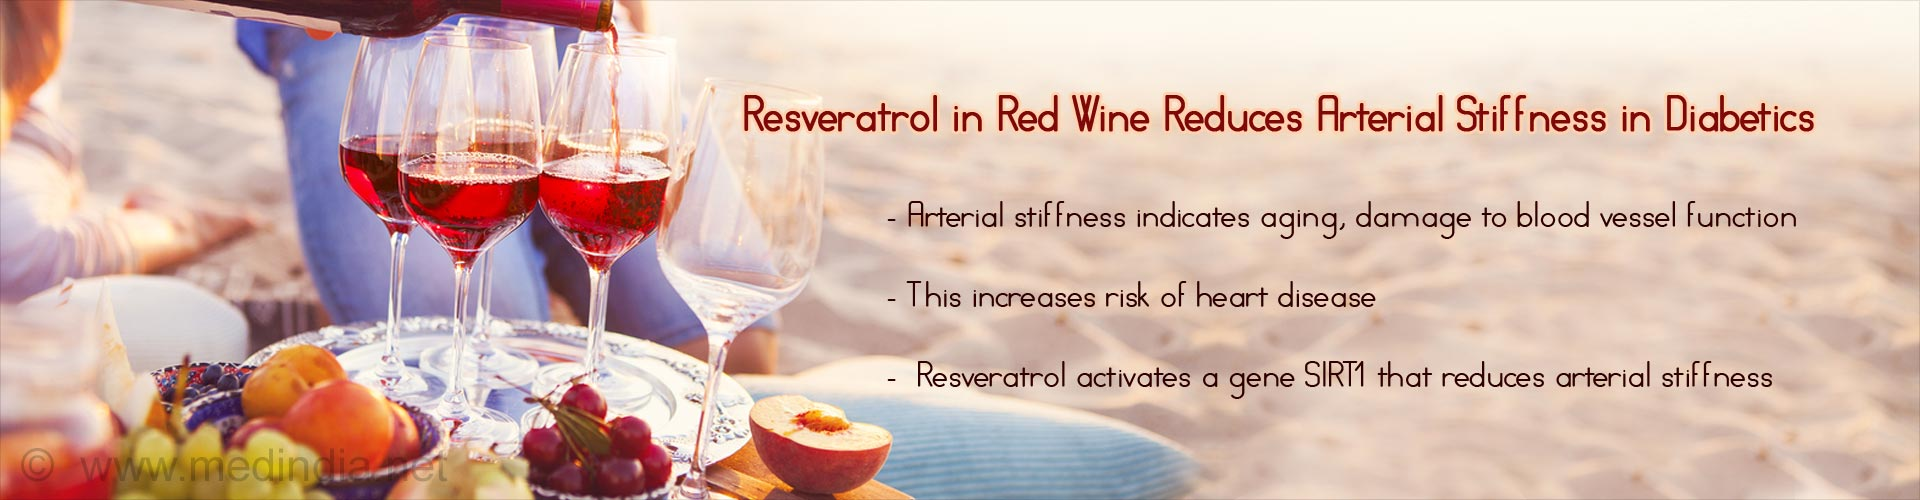 Antioxidant Resveratrol Reduces Arterial Stiffness in Diabetics